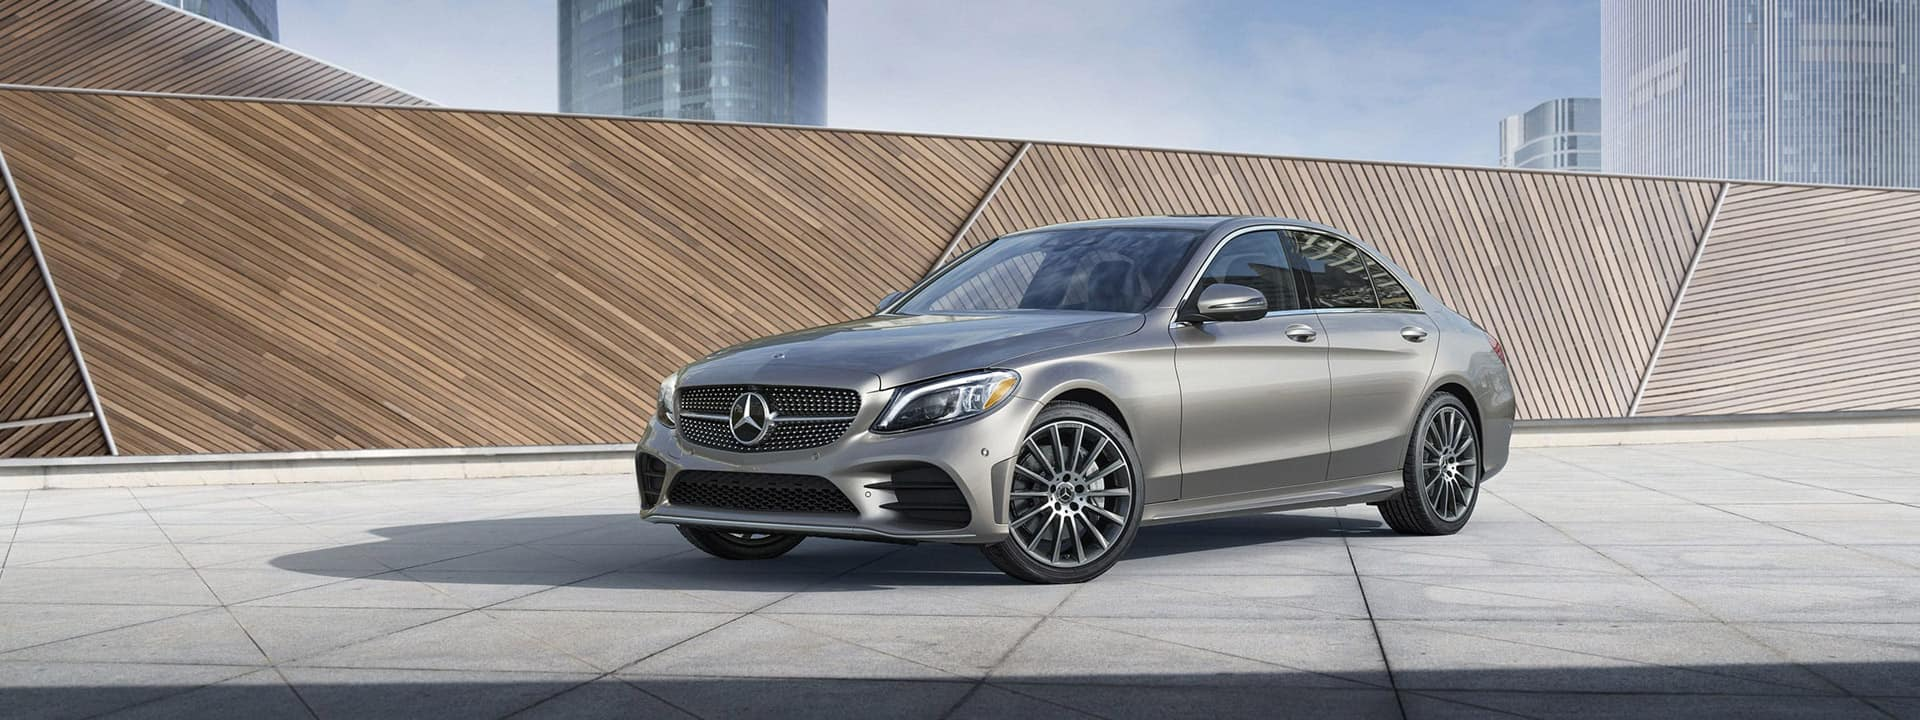 2019 Mercedes Benz C Class Model Overview Mercedes Benz Of